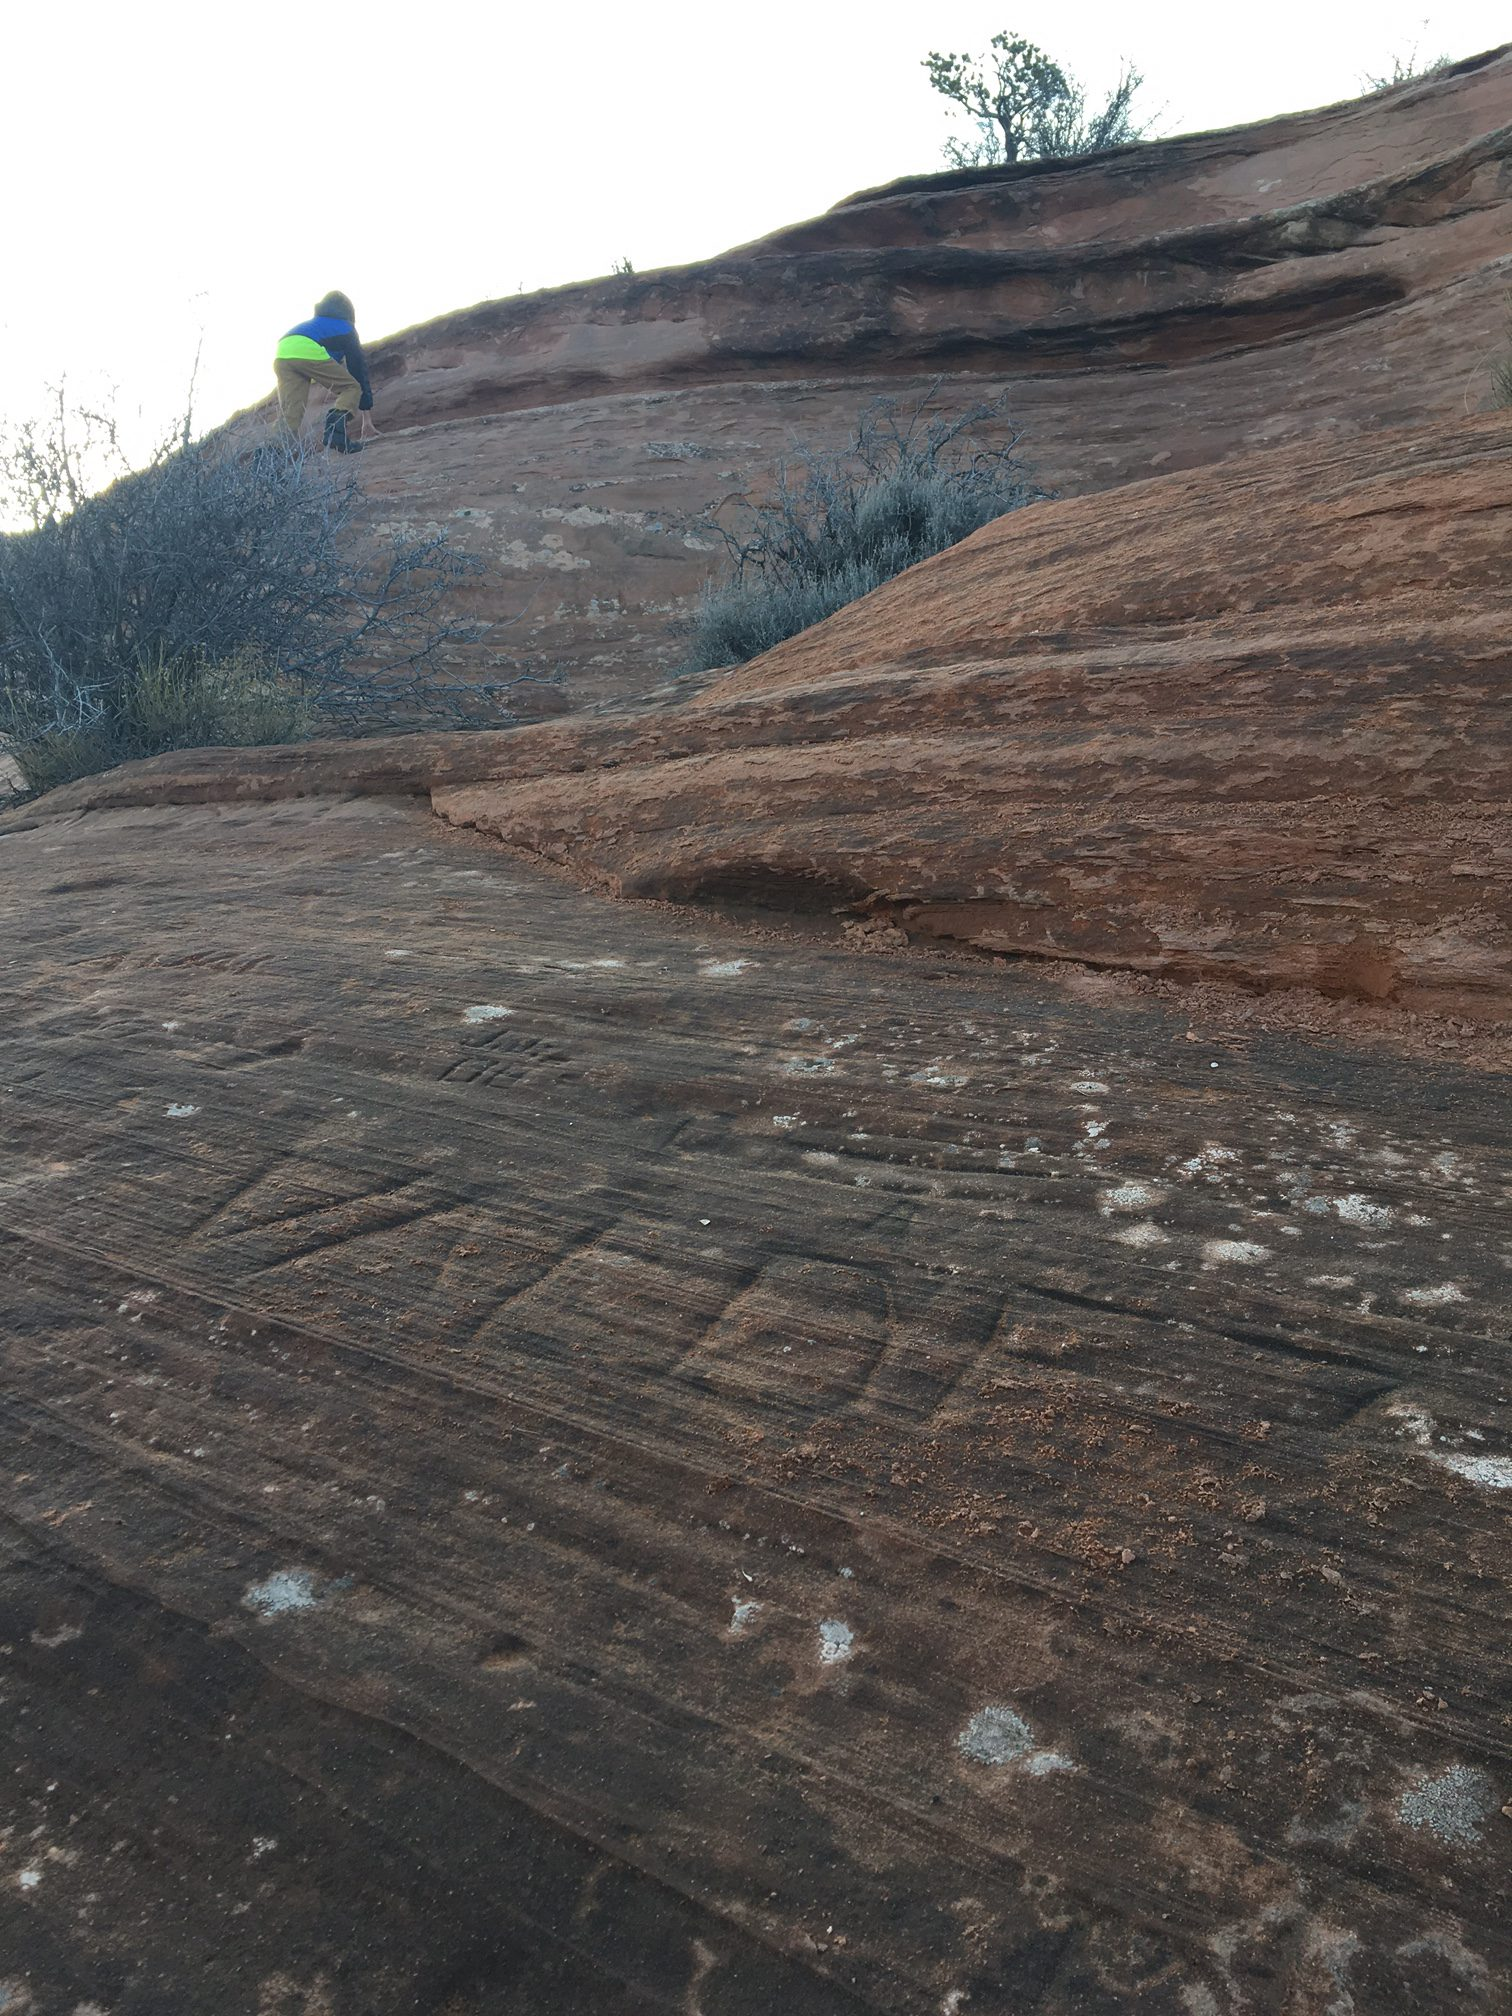 MORE grafiti on the saddlehorn formation